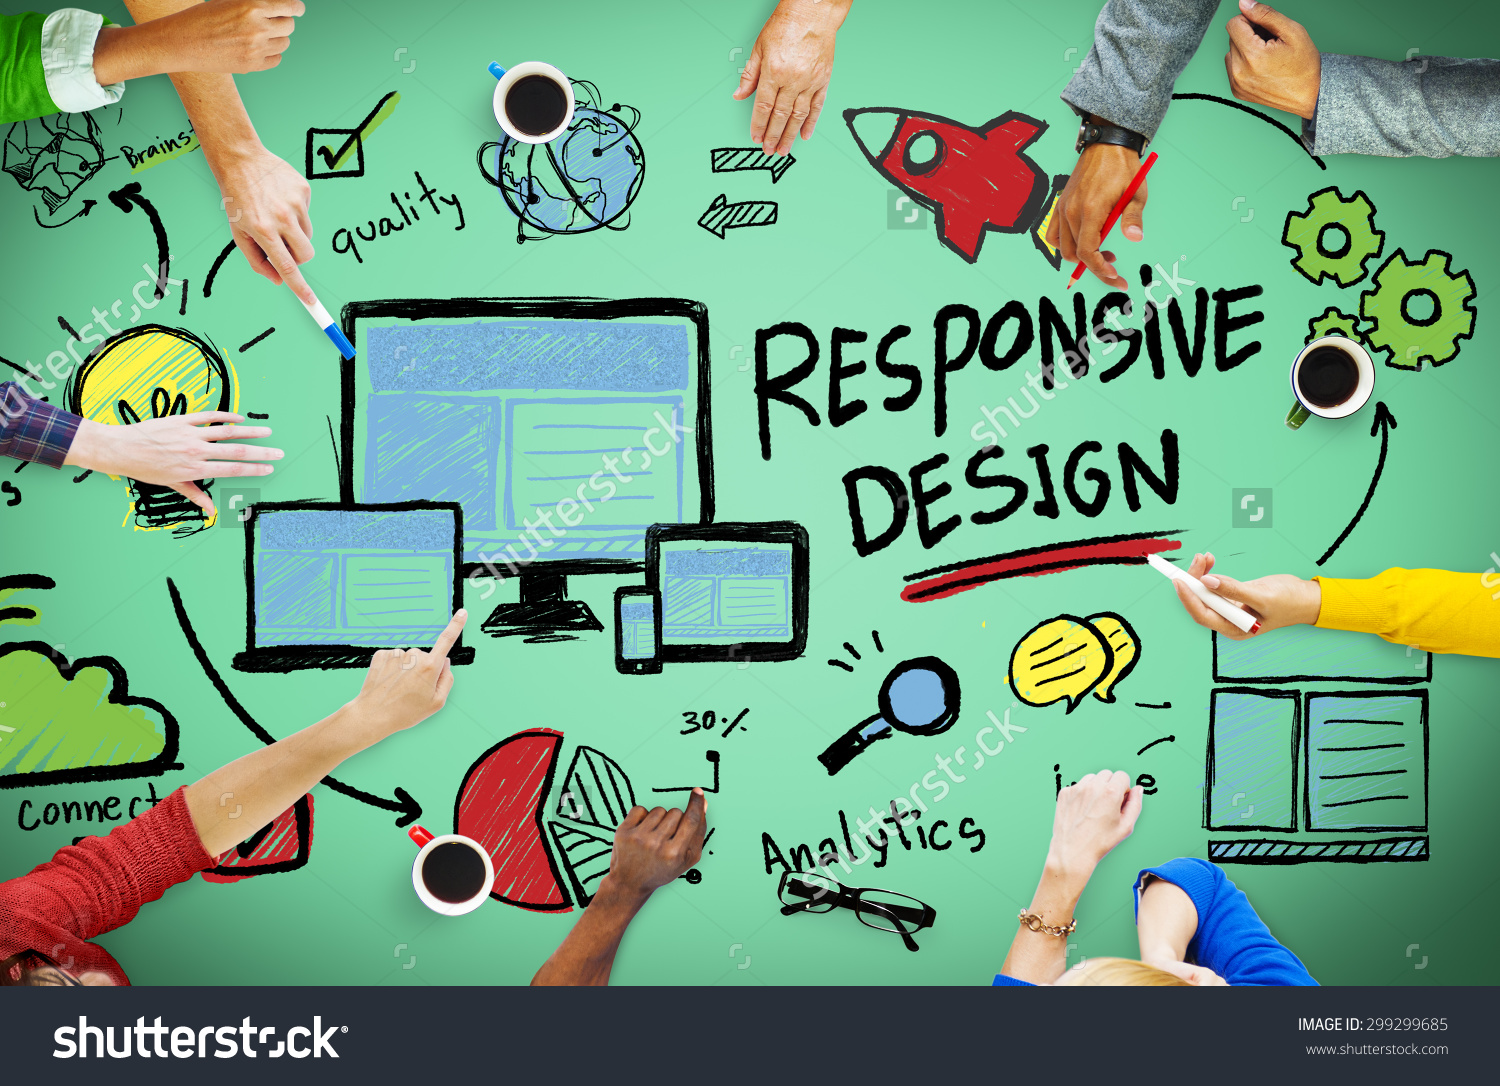 stock-photo-responsive-design-responsive-quality-analytics-imagination-concept-299299685